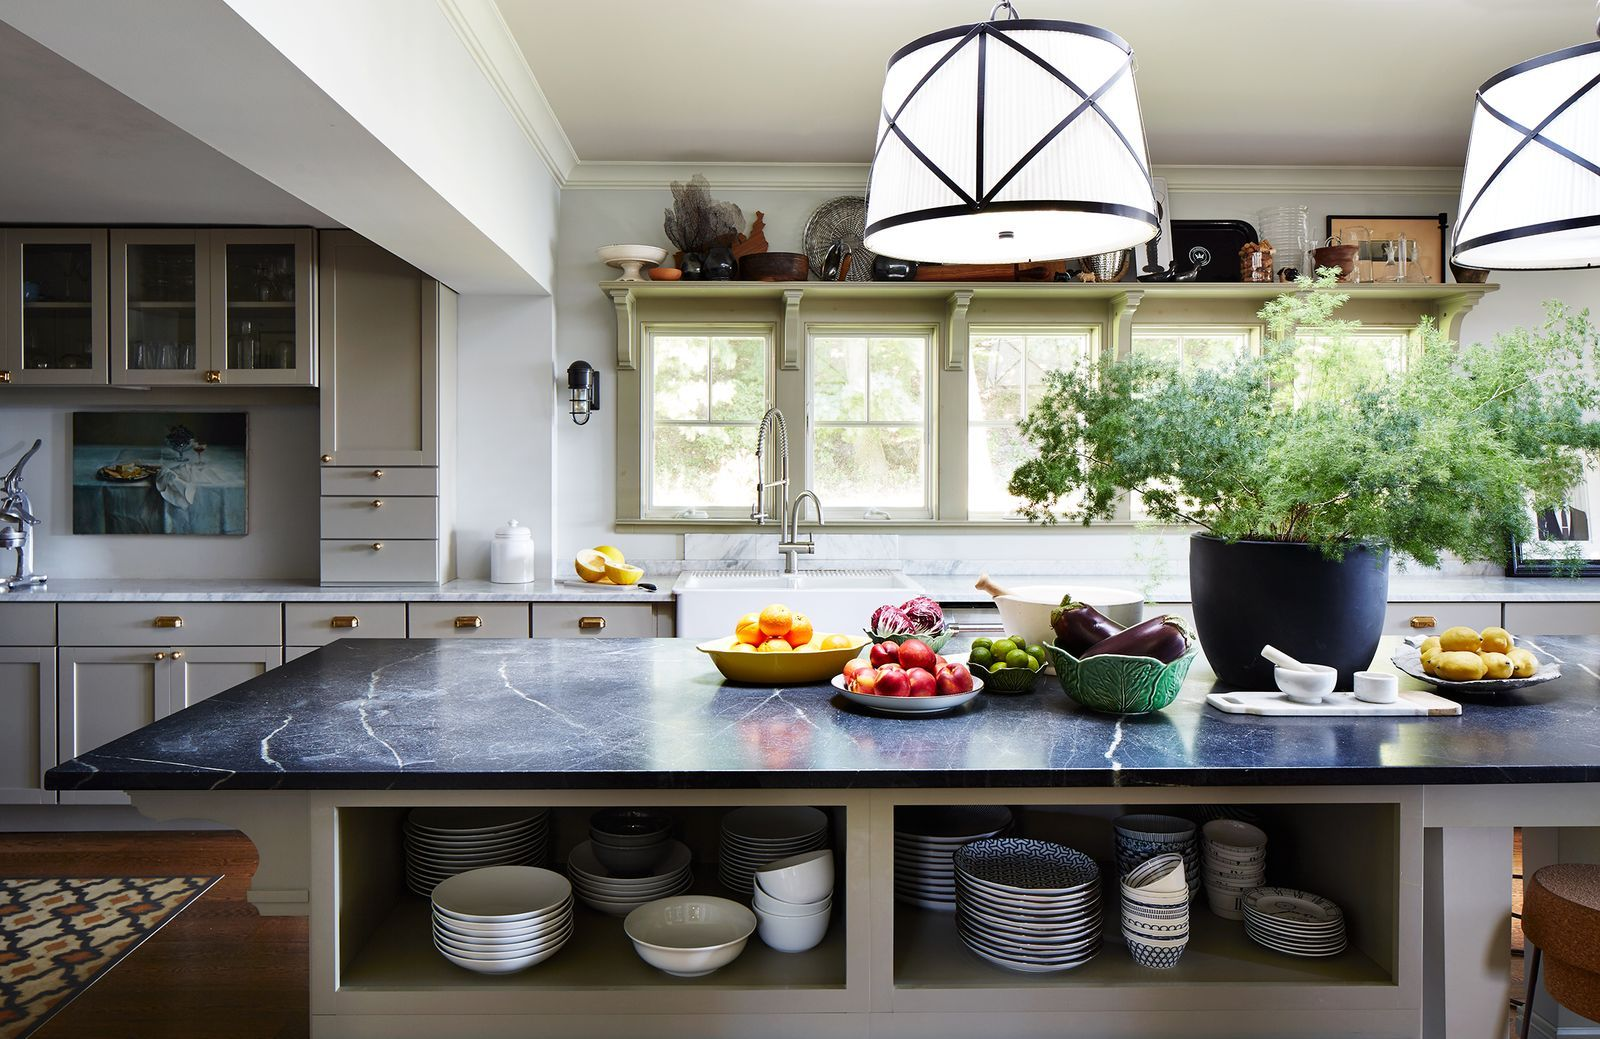 50 Ways To Upgrade Your Kitchen Island - Unique kitchen, Open kitchen shelves, Kitchen storage, Kitchen design, Cool kitchens, Kitchen cupboards - Yes  There are that many things you can do with them